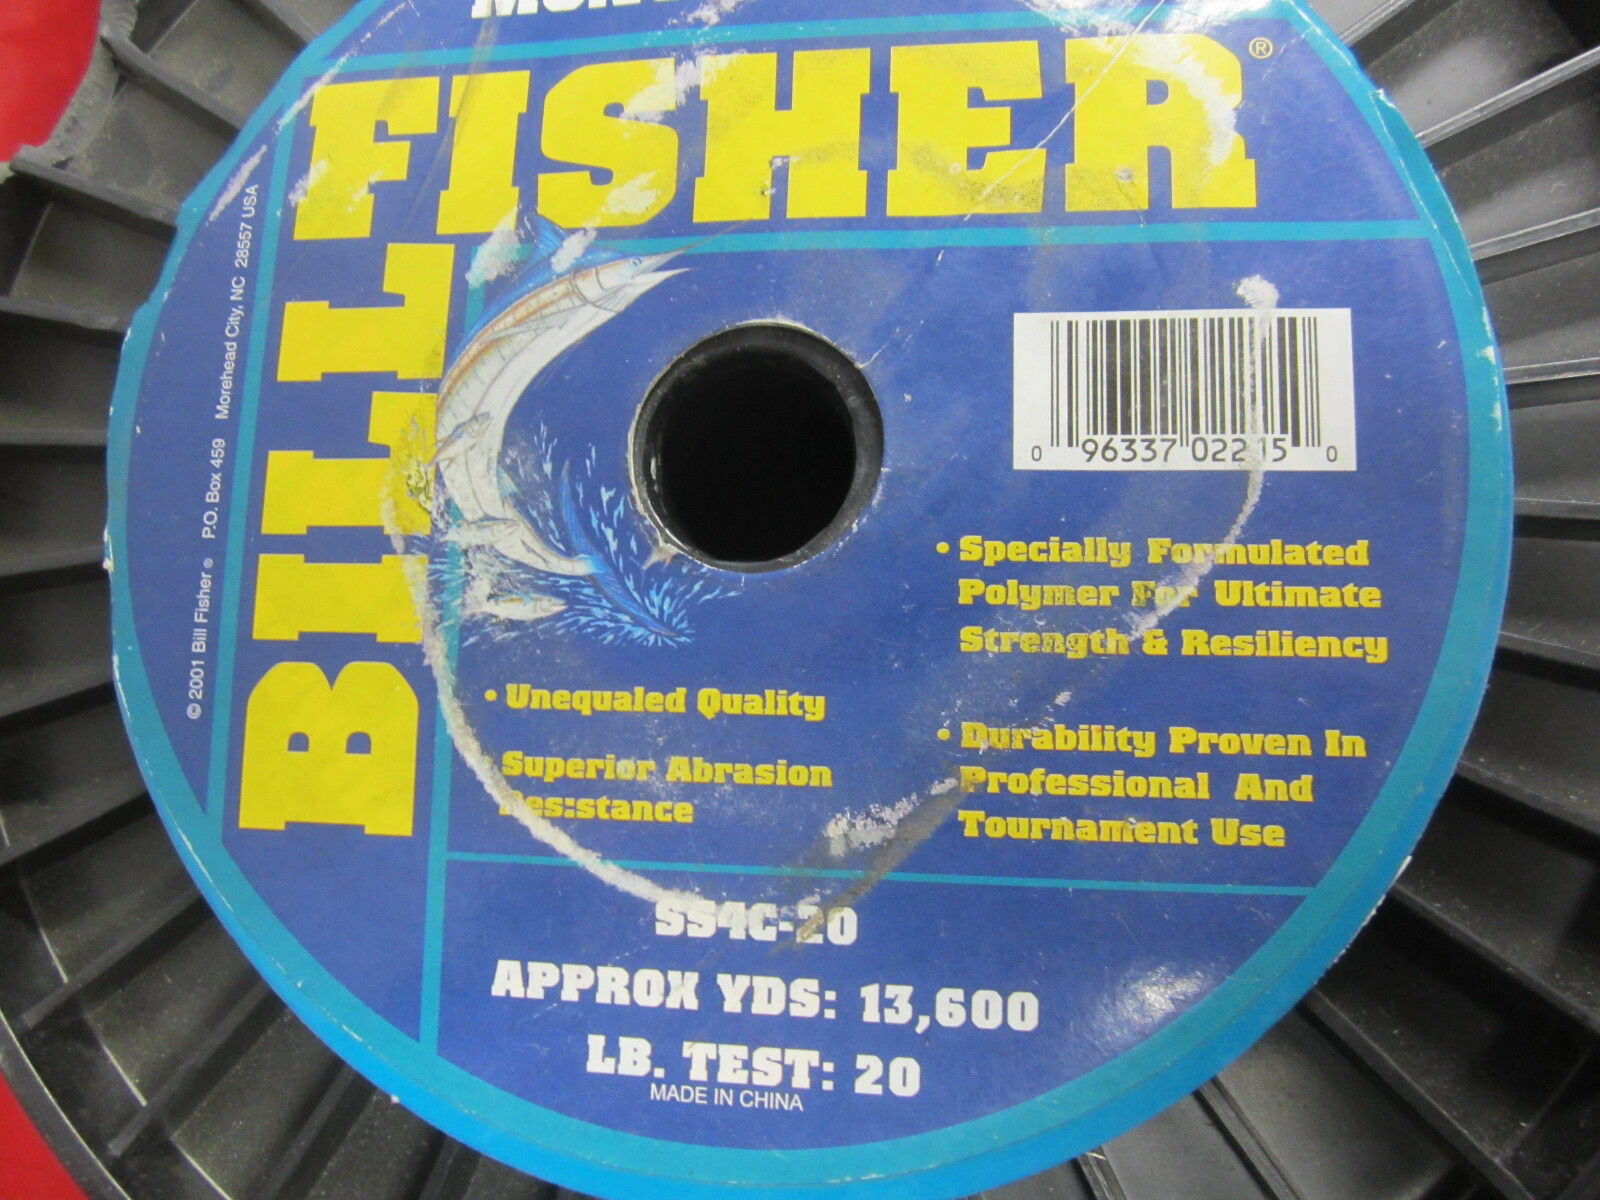 Billfisher Monofilament line - 20LB - 13600 YDS - CLEAR